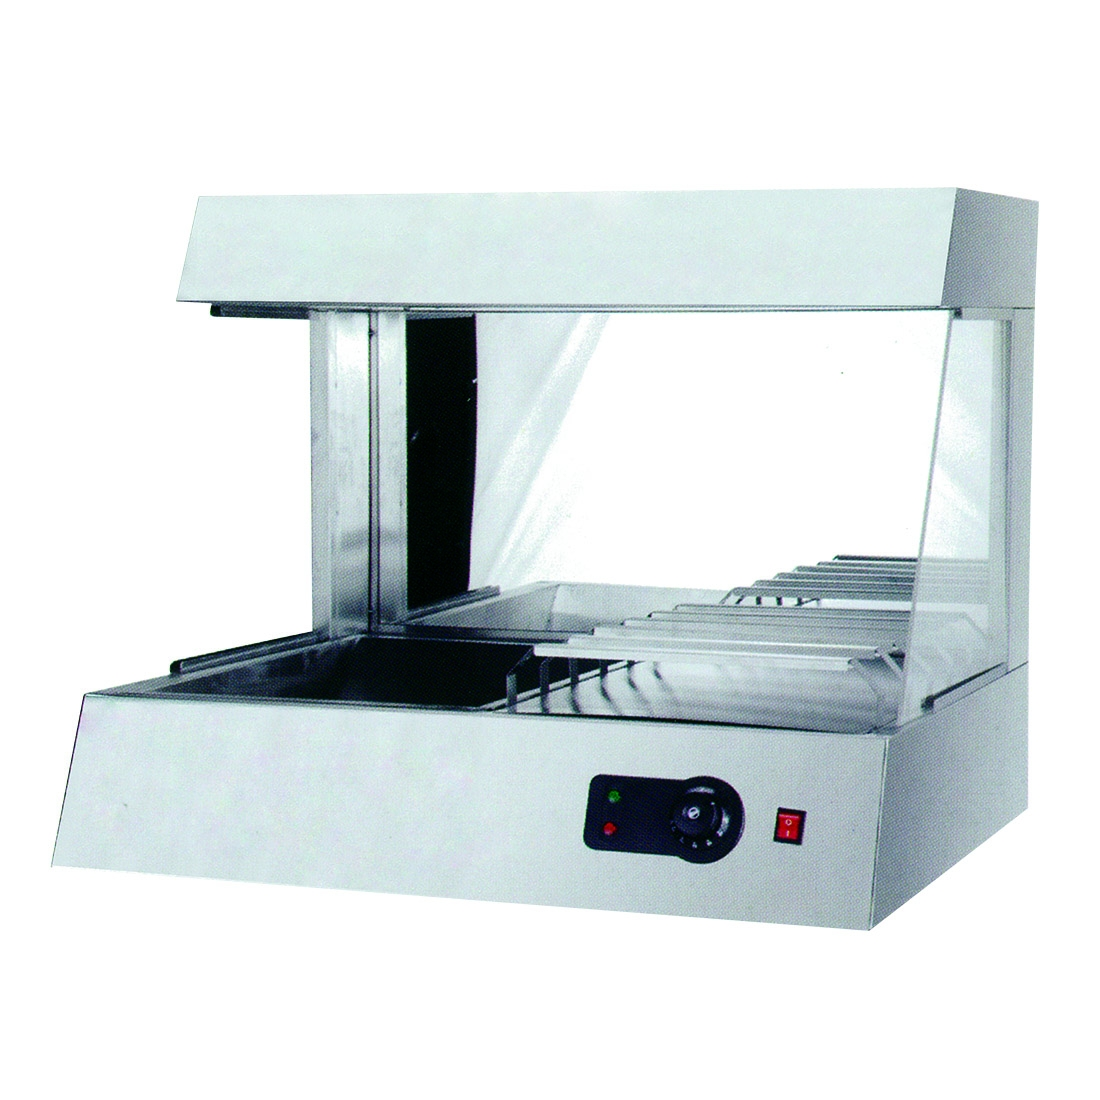 Large Bench Chip Warming Station - TFW-8KW